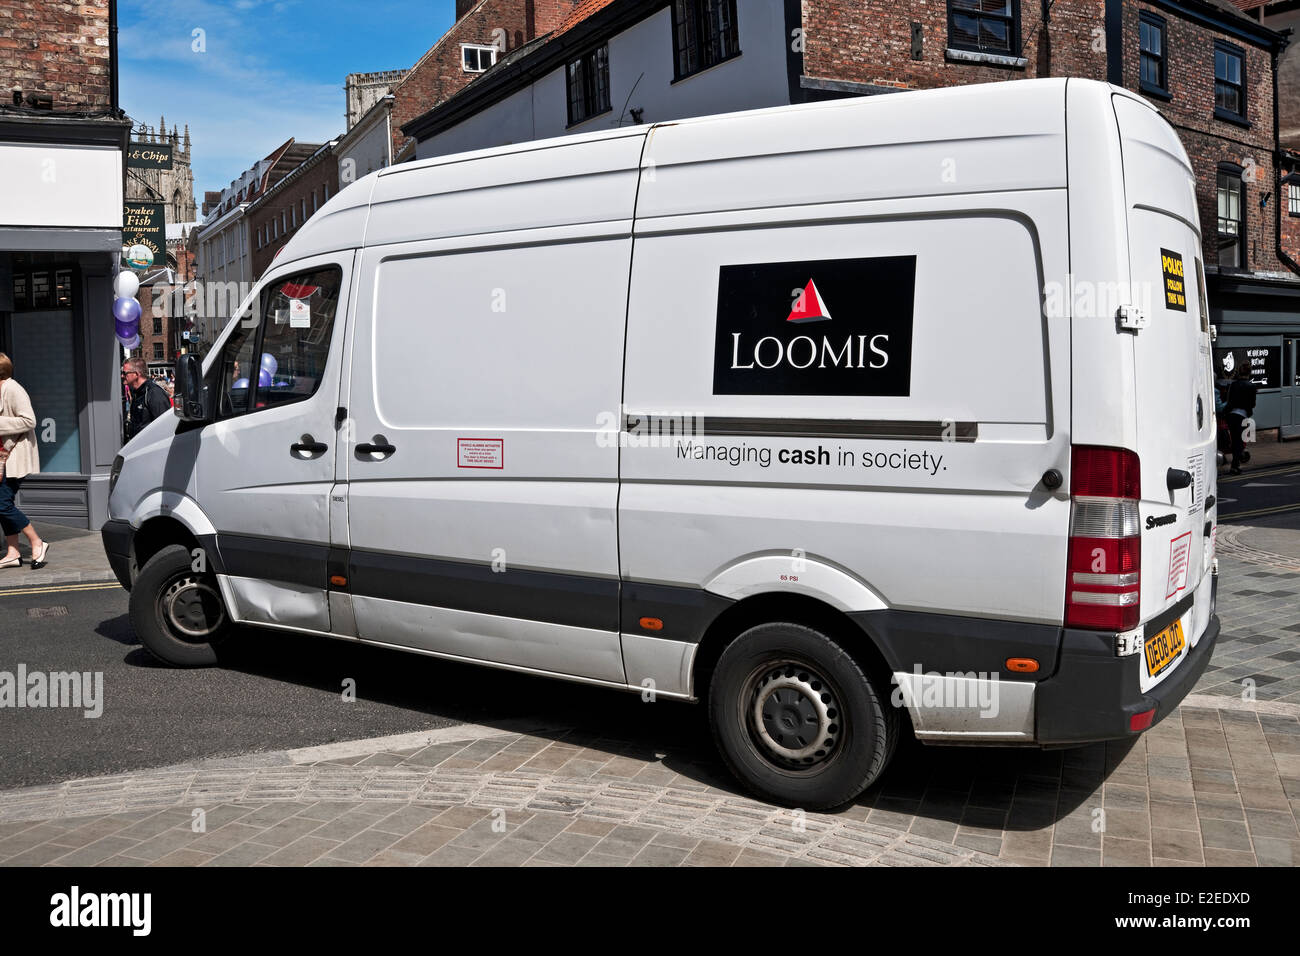 7a457f79f19ed6 Loomis security van York North Yorkshire England United Kingdom UK GB Great  Britain - Stock Image